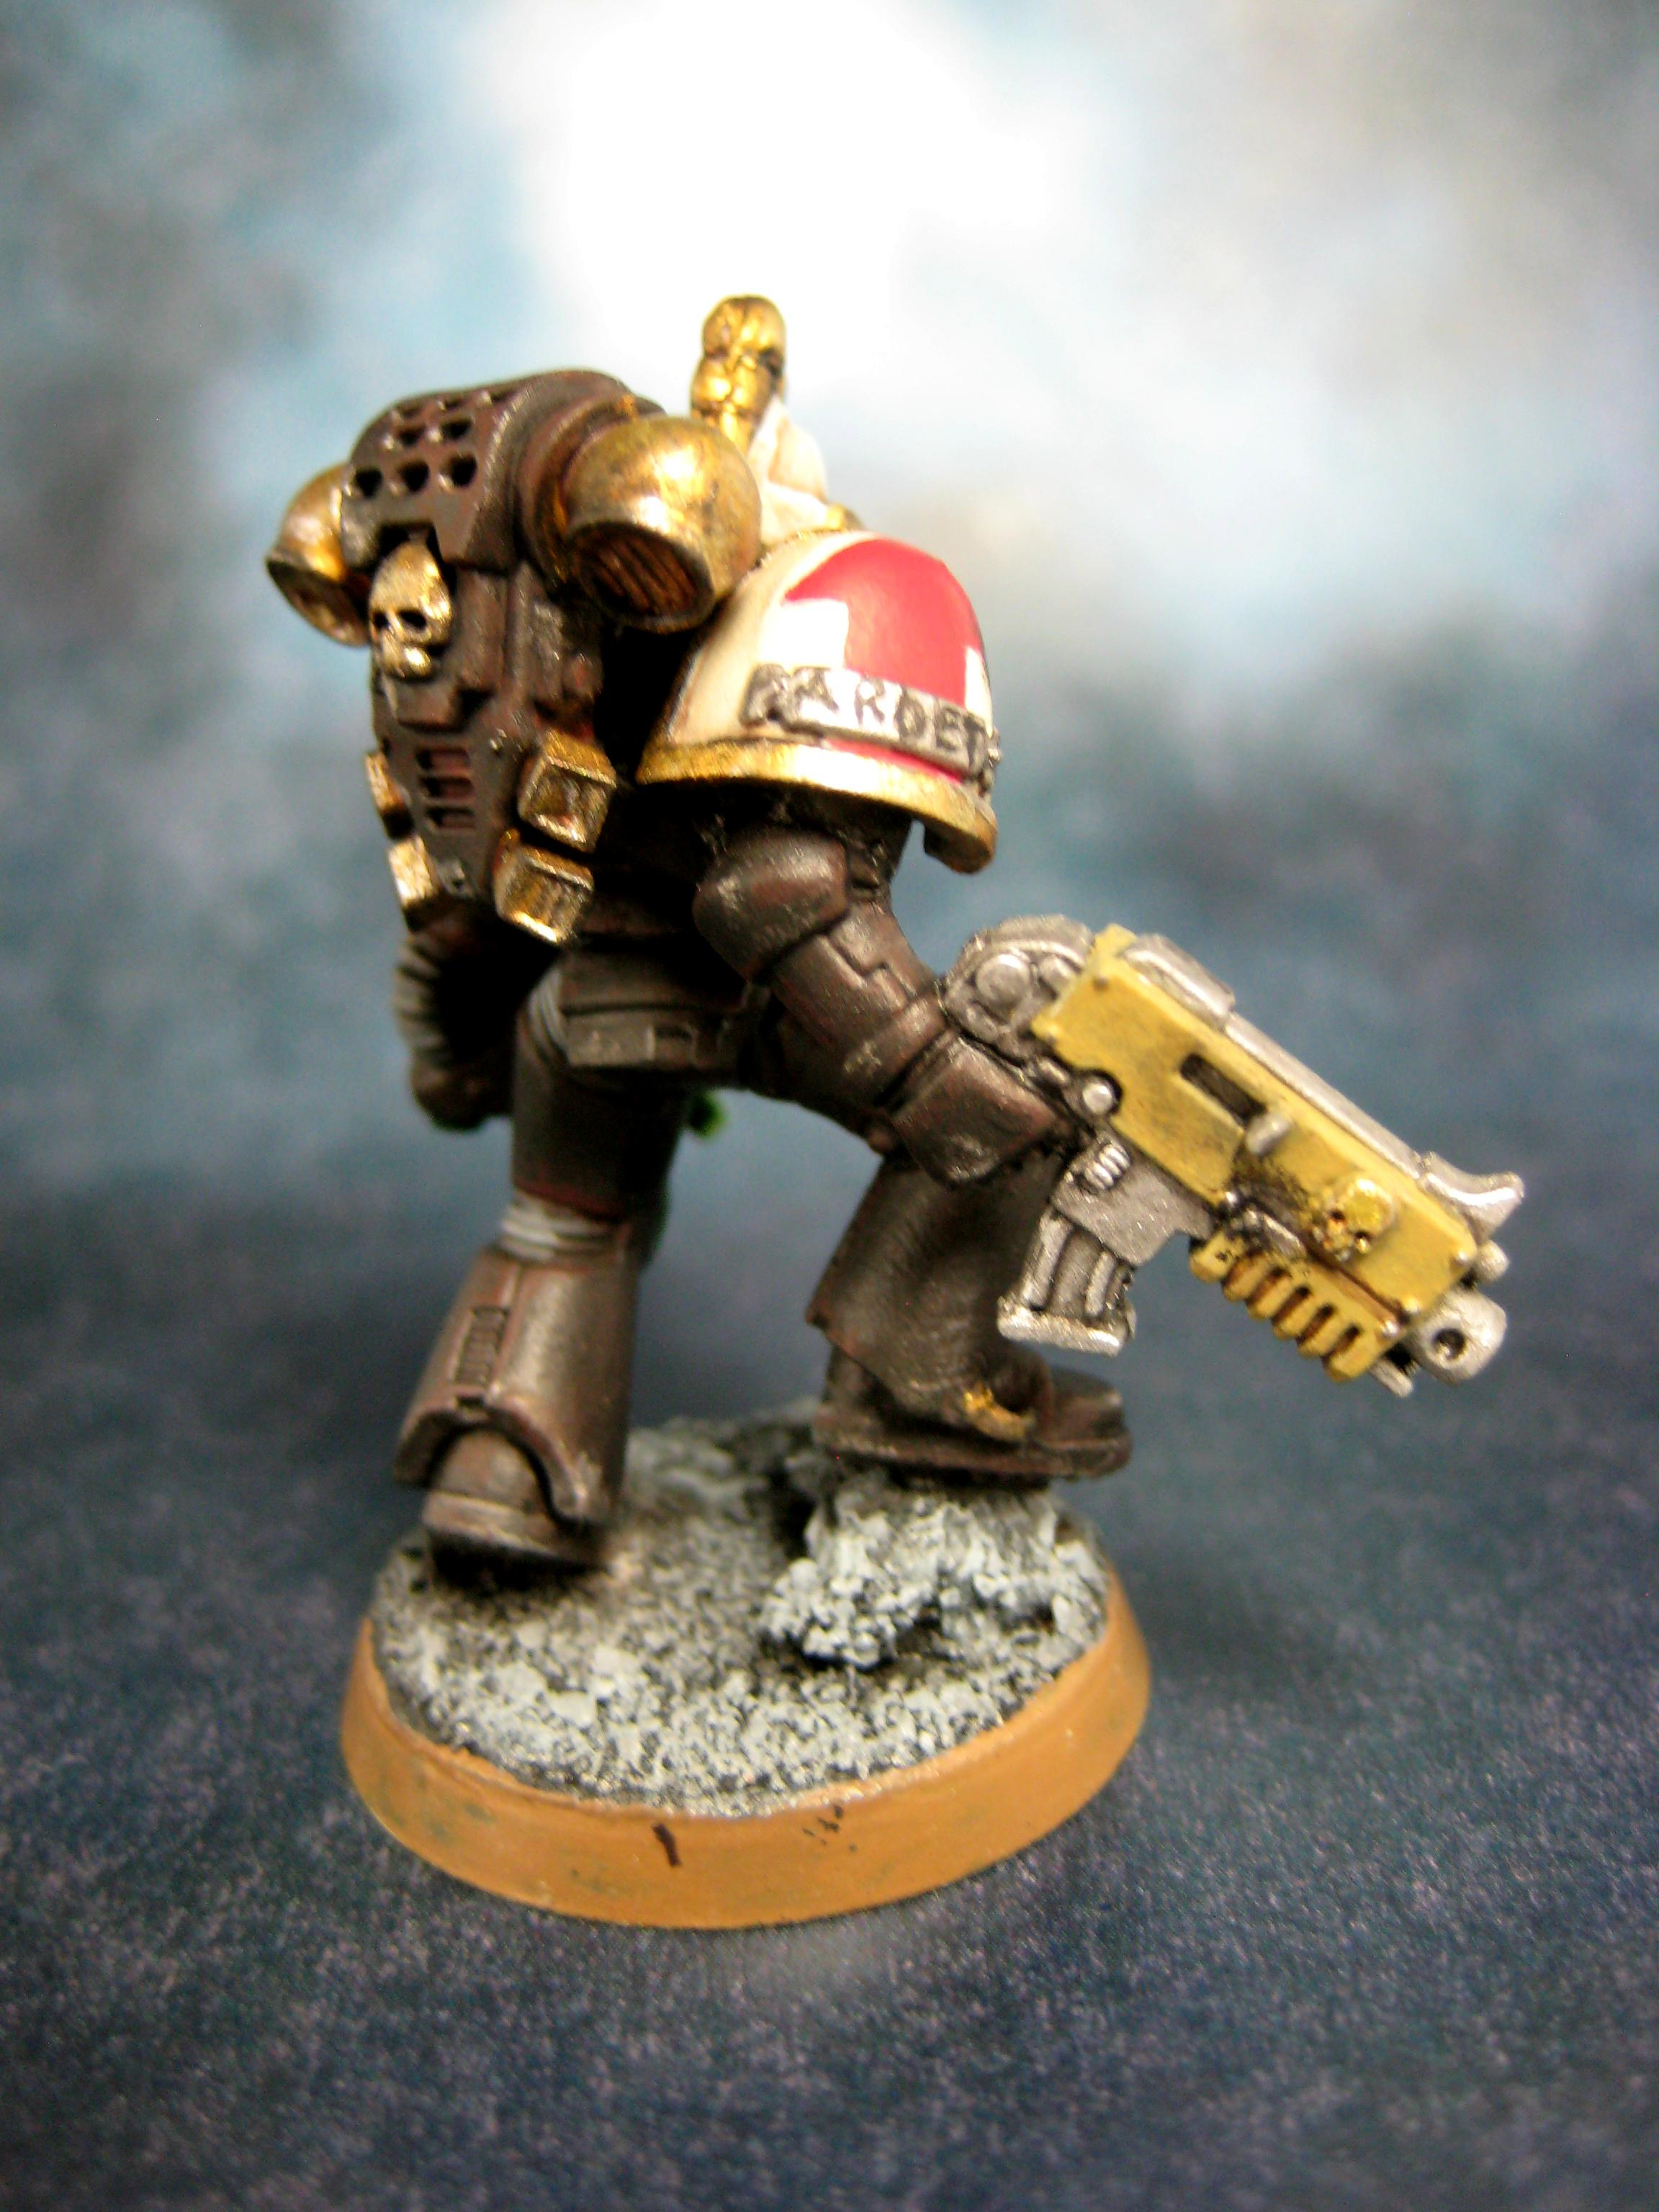 Coversion, Custom, Egyptian, Scorpion, Space Marines, Warhammer 40,000